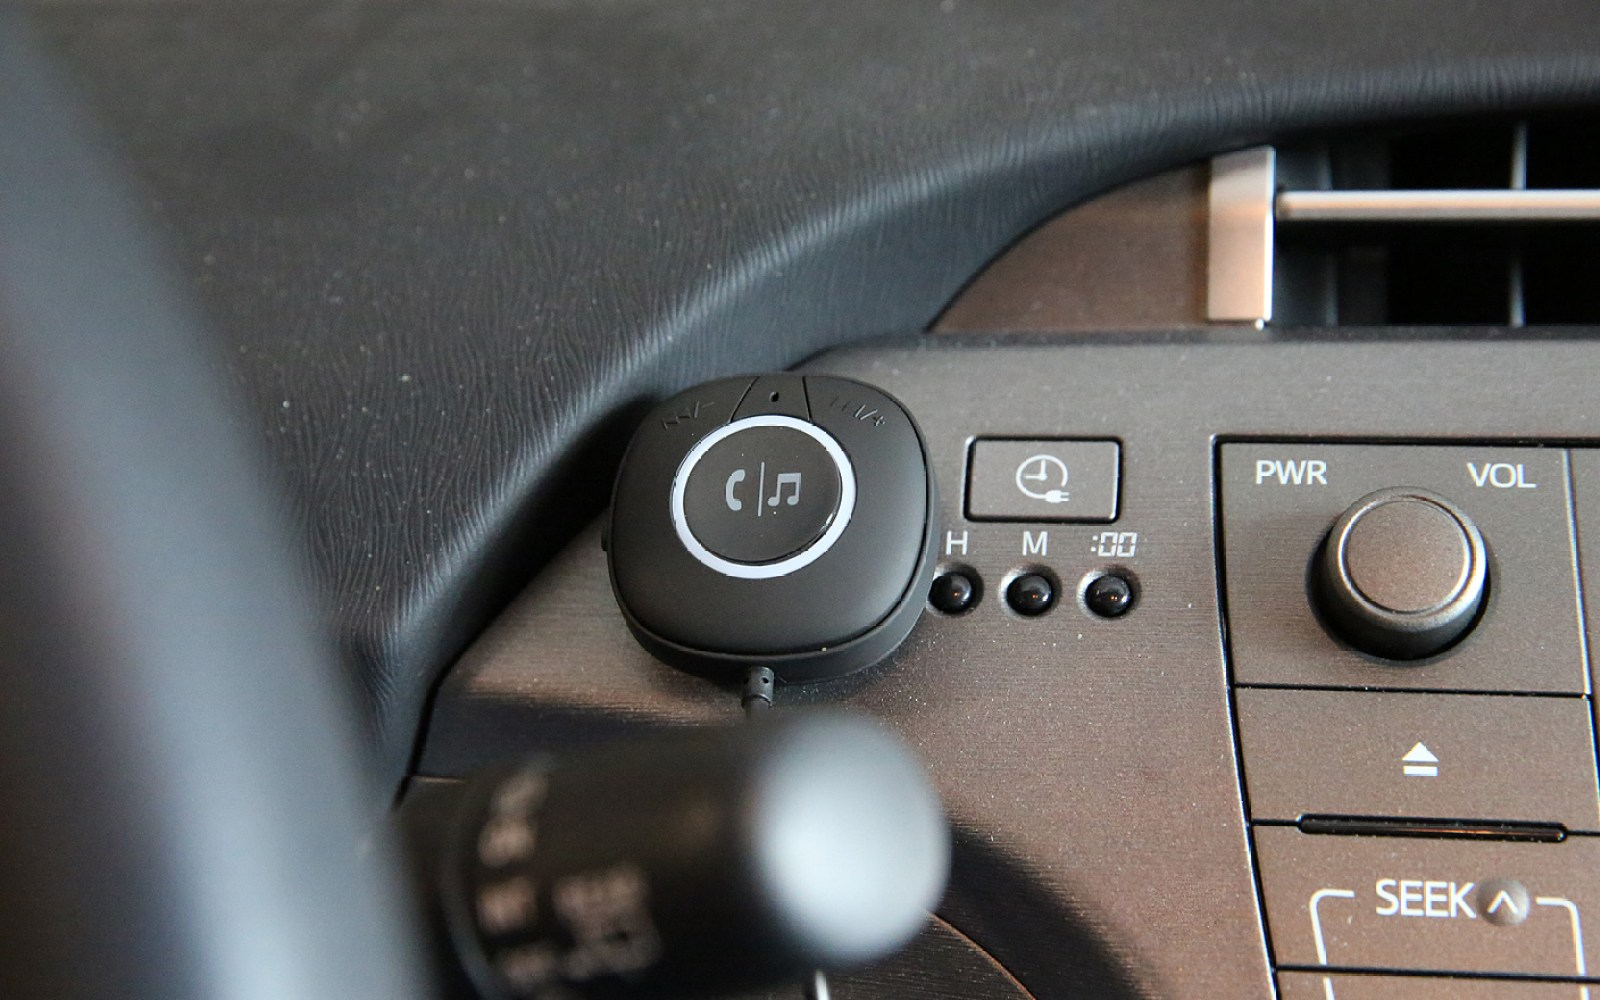 Review: TaoTronics' Bluetooth 4 Car Kit for iPhone adds low-cost speakerphone, music to older cars